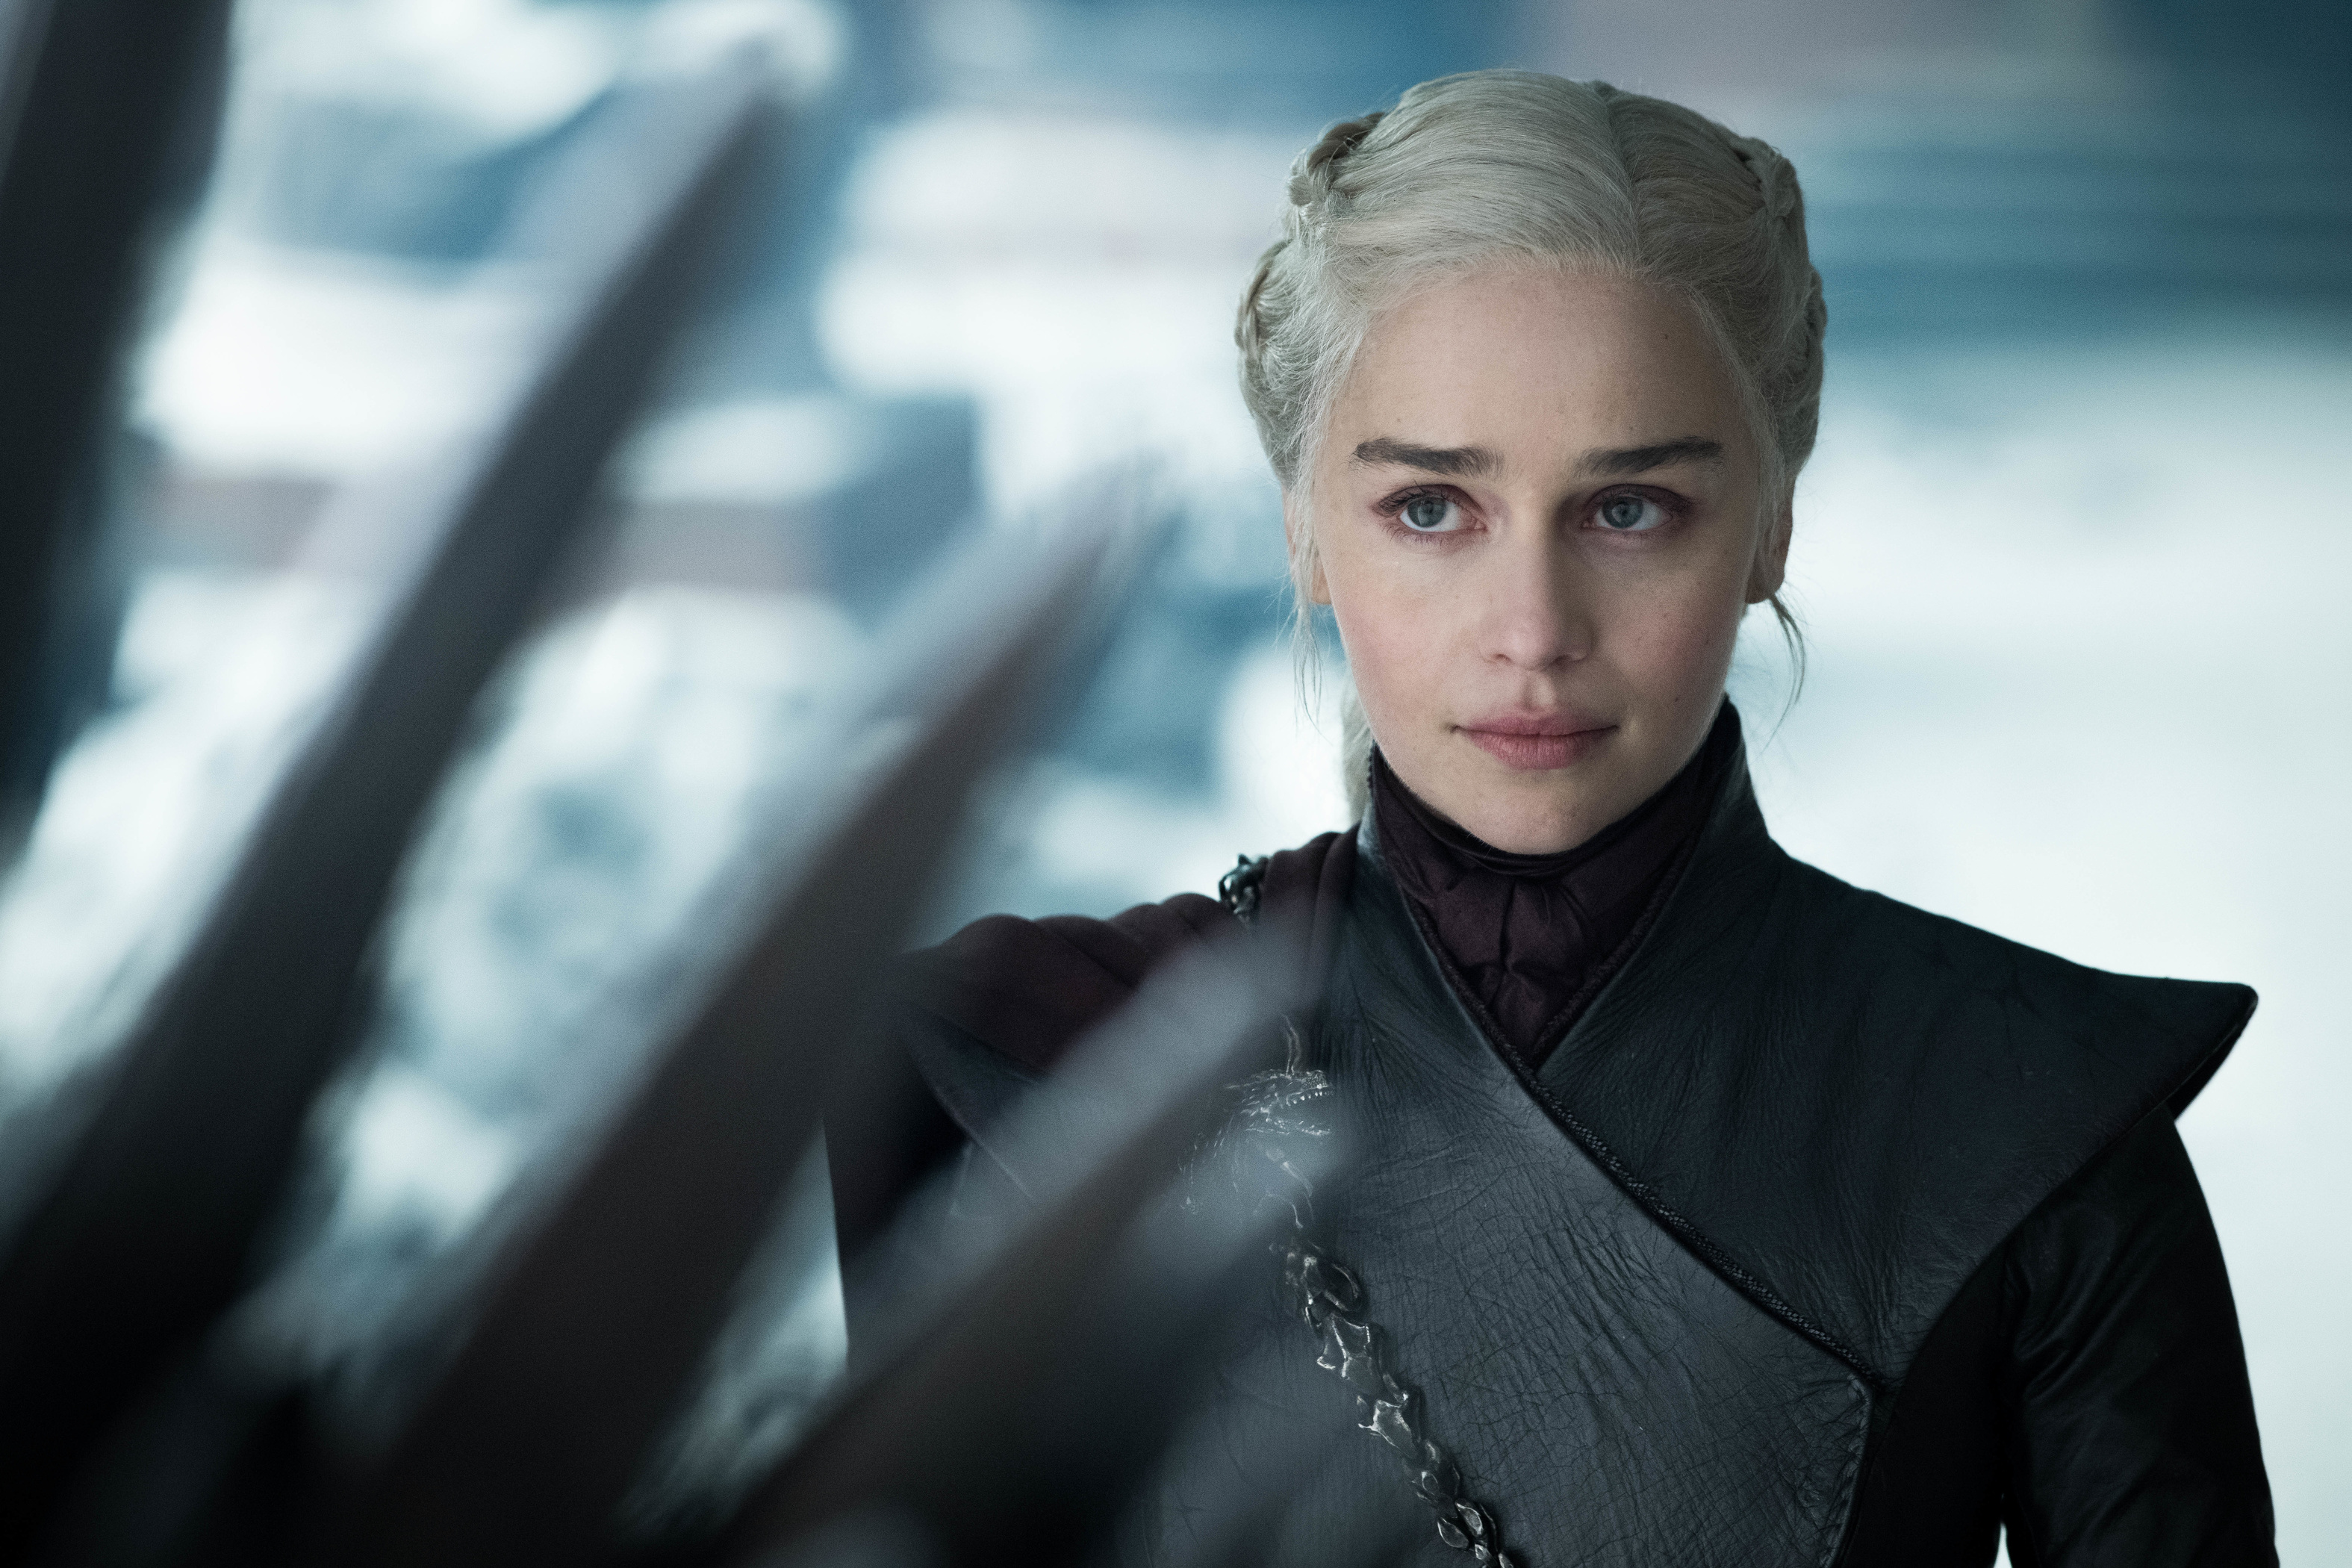 Emilia Clarke Reveals Why 'Game of Thrones' Ending Annoyed Her | IndieWire